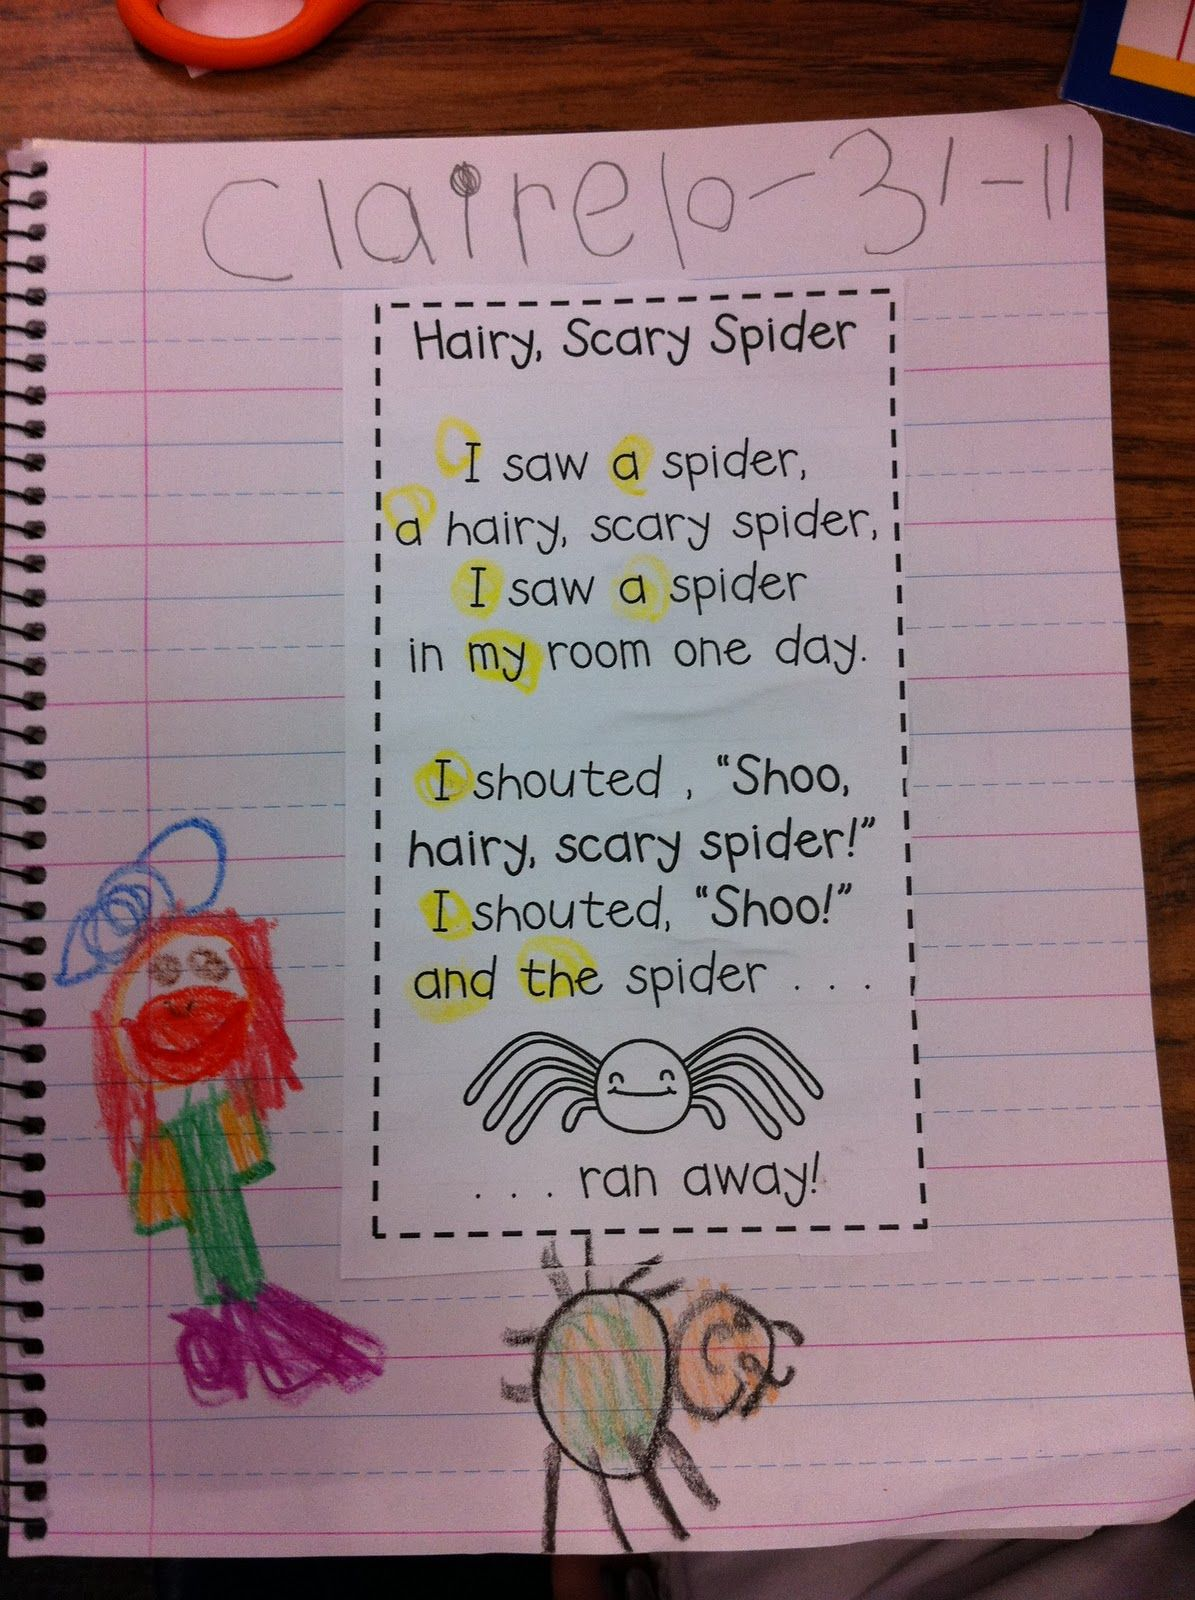 Poetry Notebook Highlight Sight Words And Underline Chunks Or Word Patterns